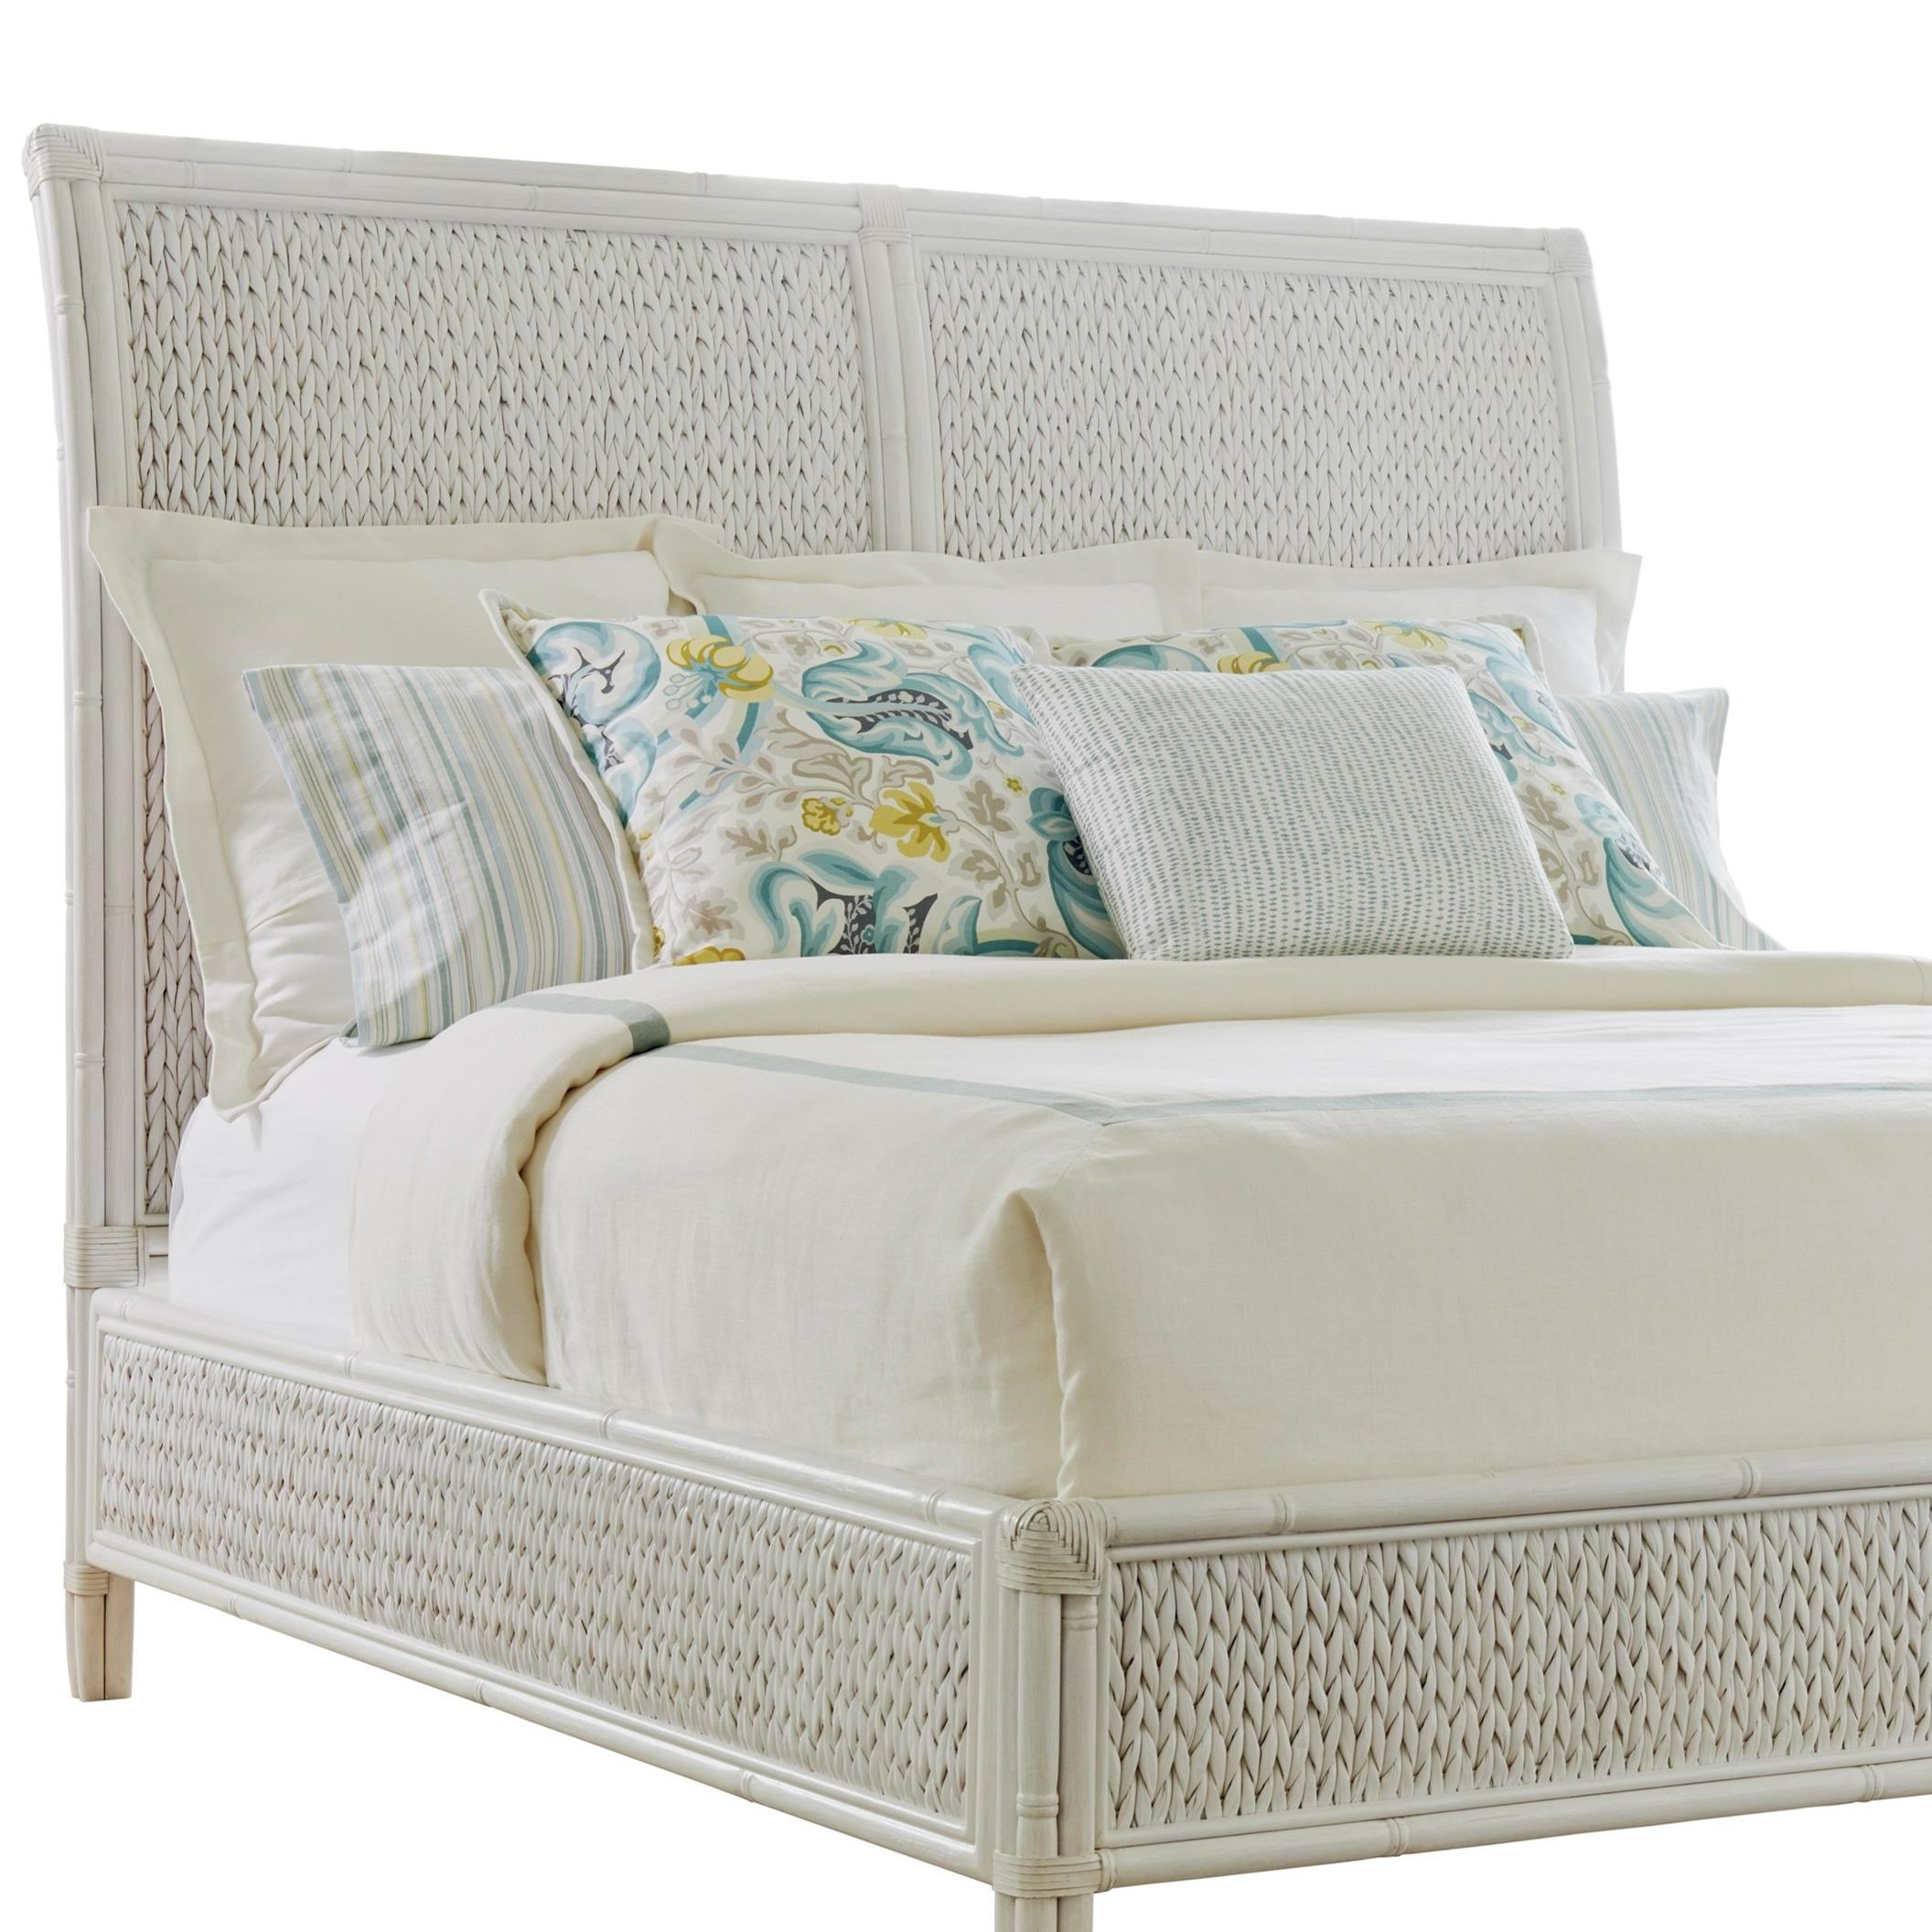 Ocean Breeze Siesta Key Woven Headboard King by Tommy Bahama Home at Baer's Furniture